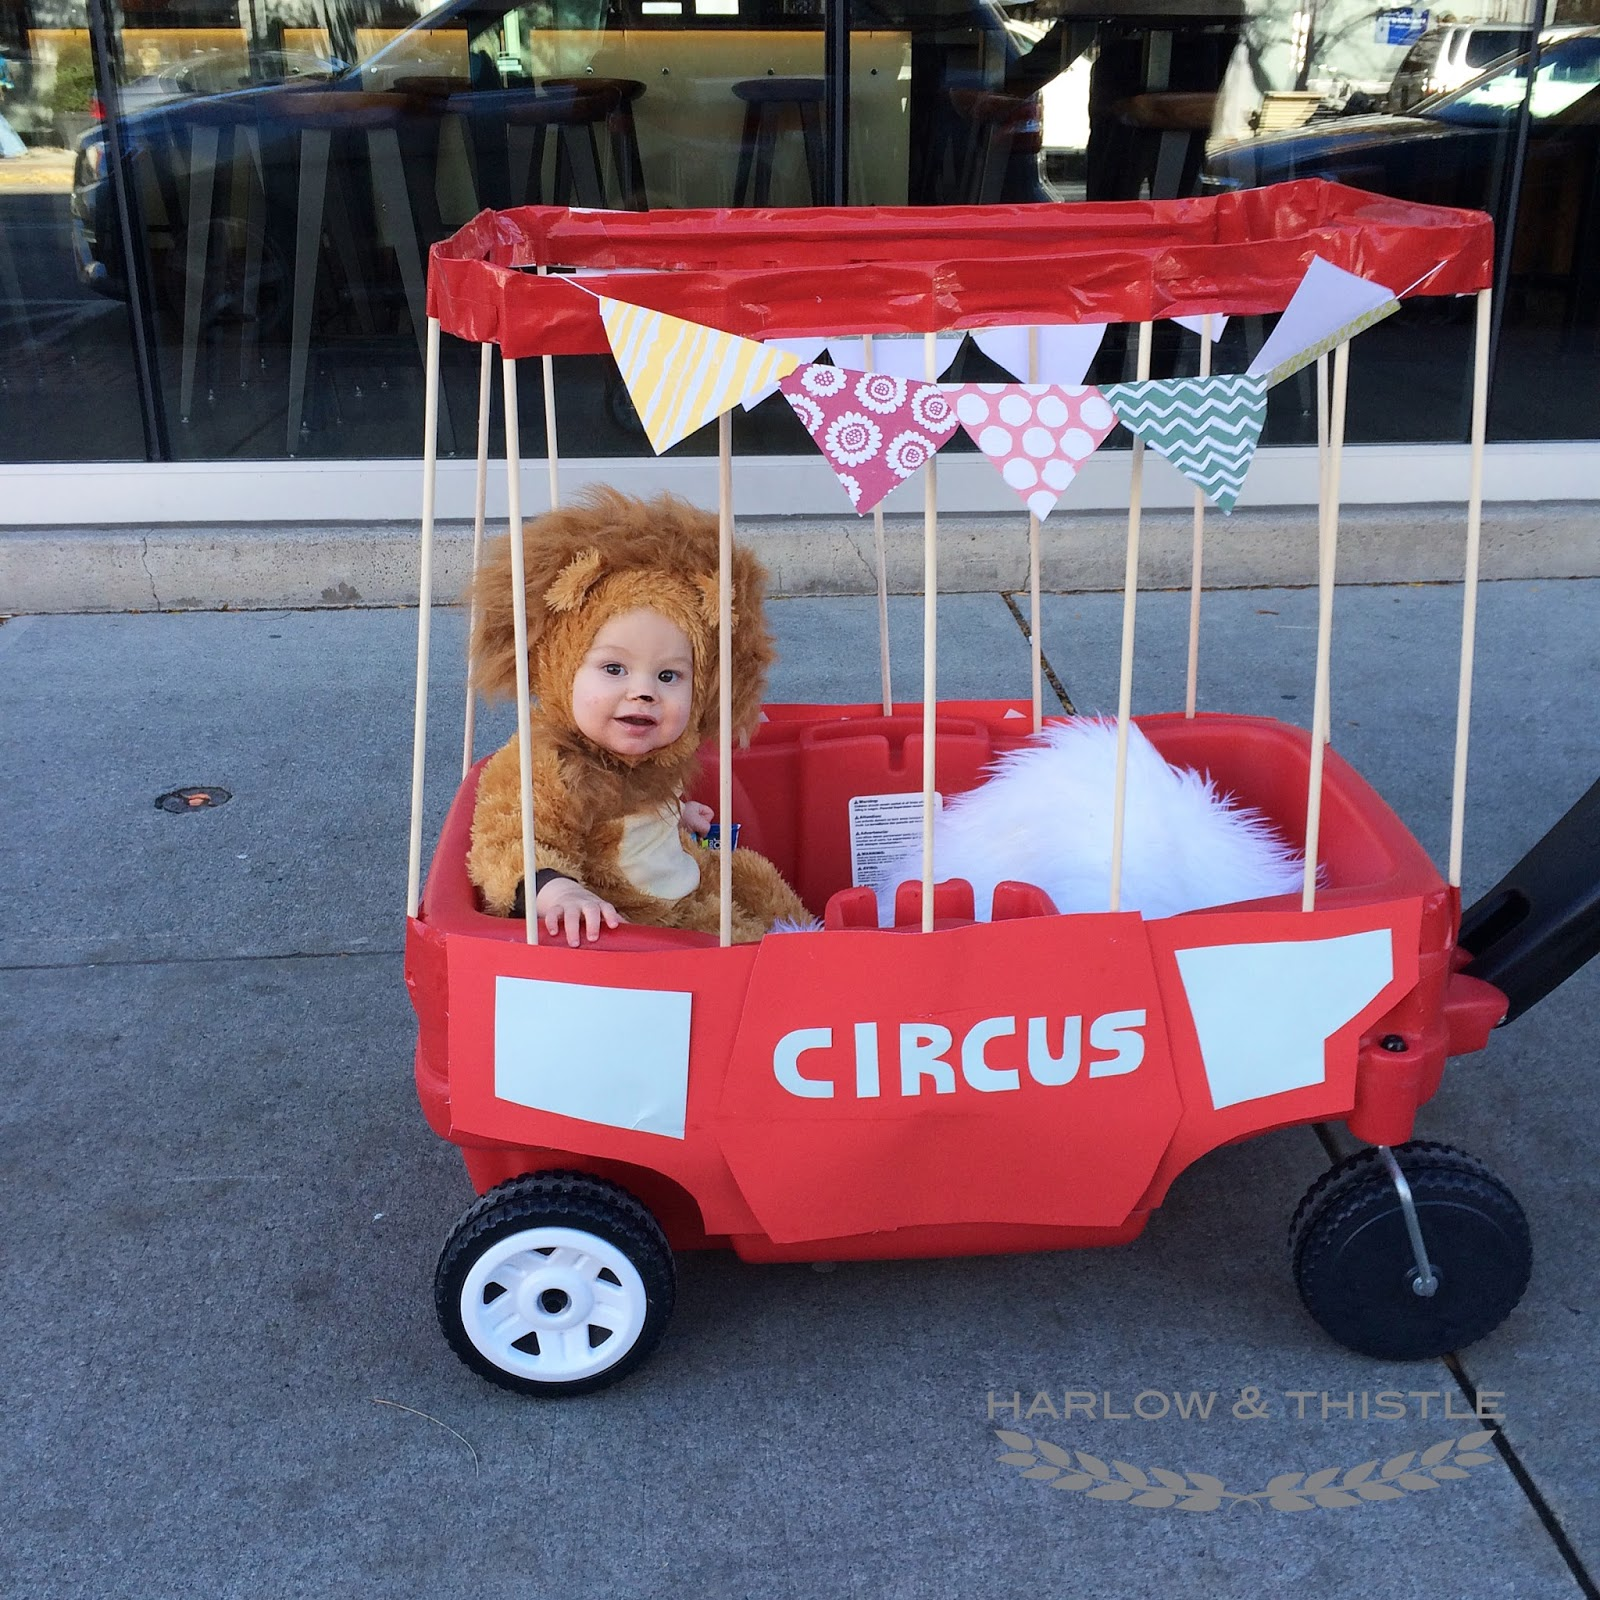 Home Depot Outdoor Decor Diy Halloween Baby Circus Lion Harlow Amp Thistle Home